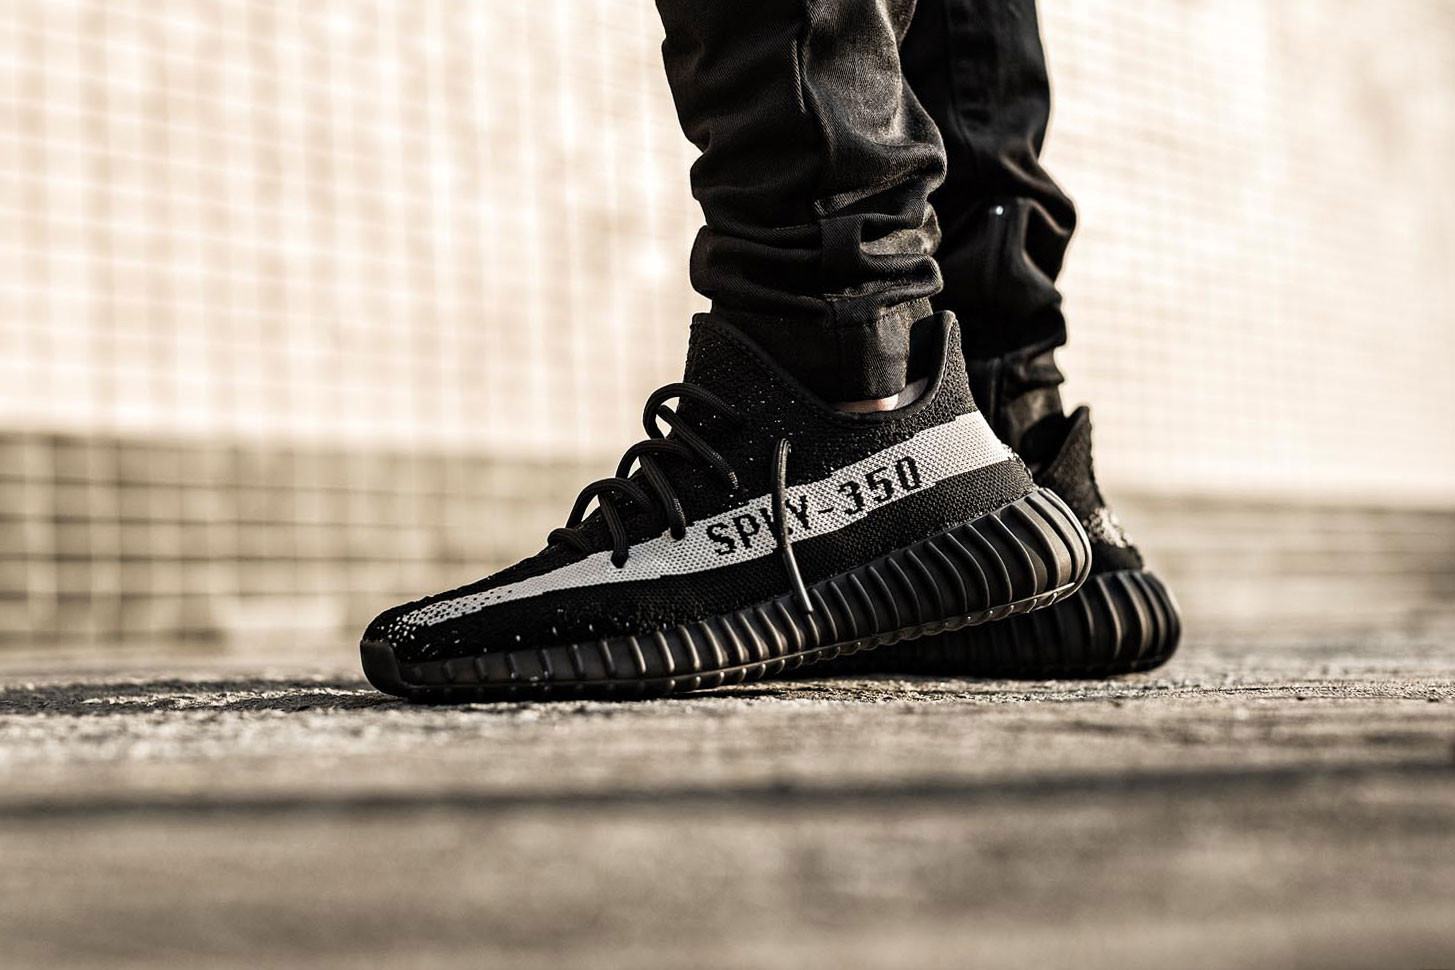 d4854a57b55c3 YEEZY BOOST 350 V2 CORE BLACK WHITE Store List